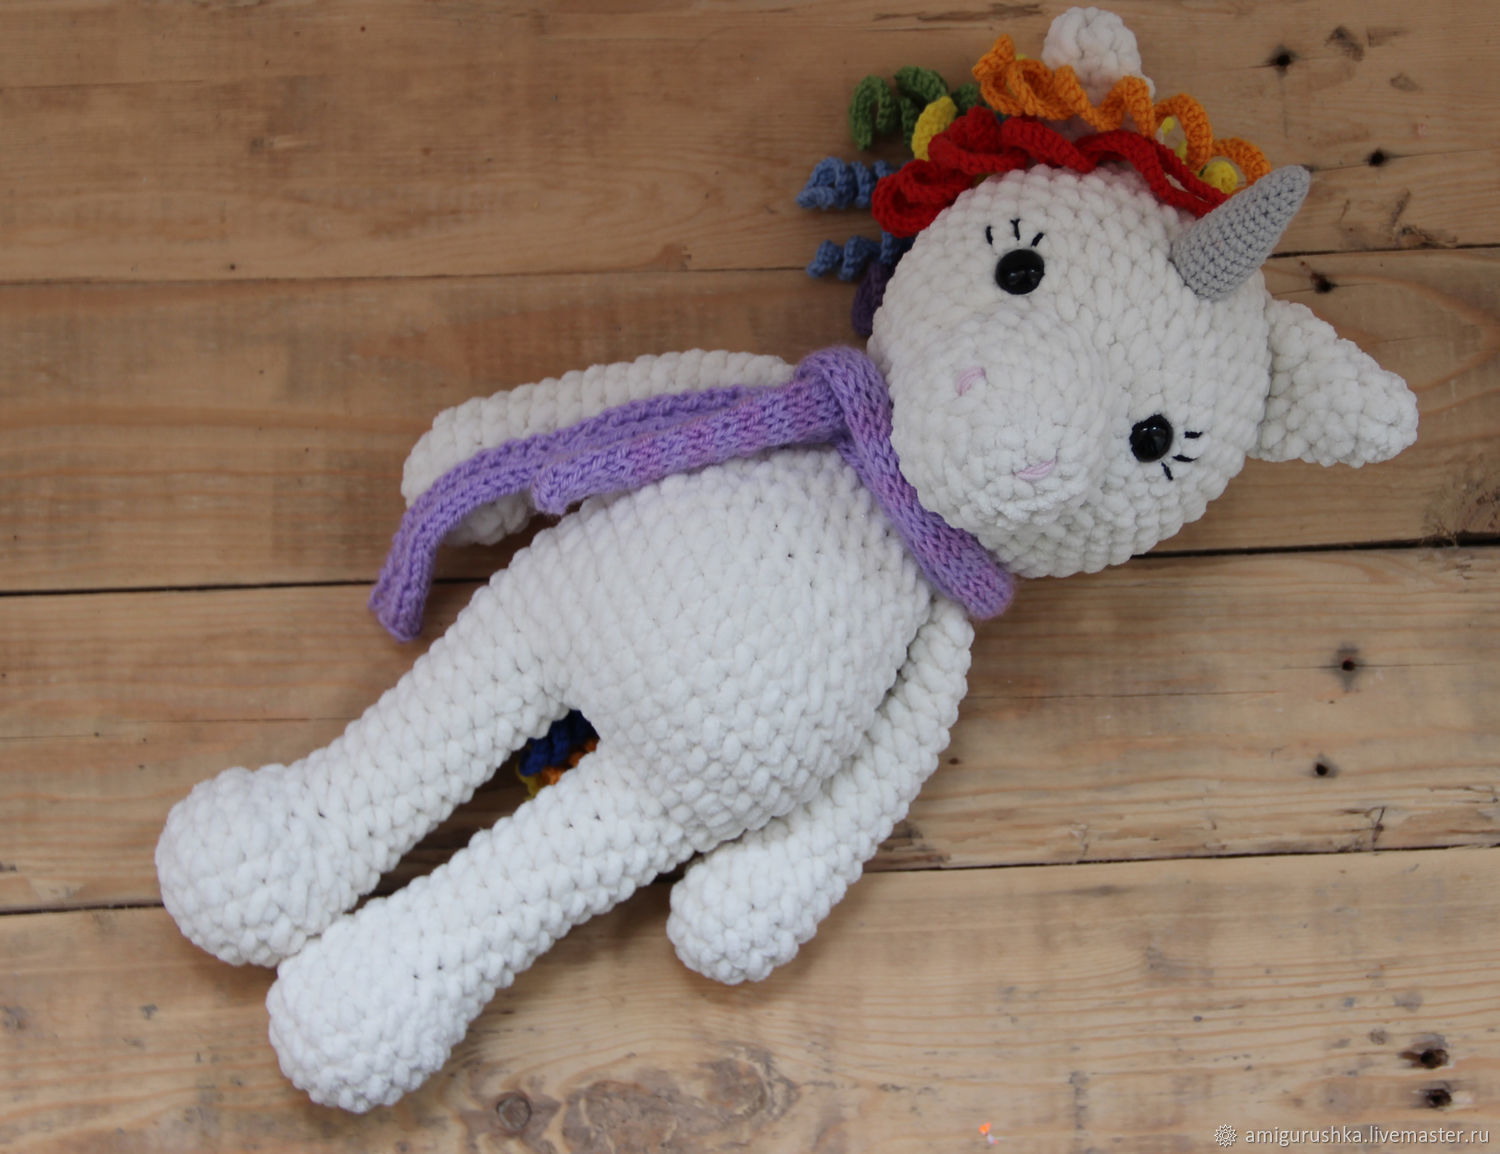 buy amigurumi,amigurumi to buy toys, knitted plush toys, knitted unicorn, marshmallow toys,knitted animals,knitted toys, knitted toys pictures of yarn, knitted plush toy, crochet